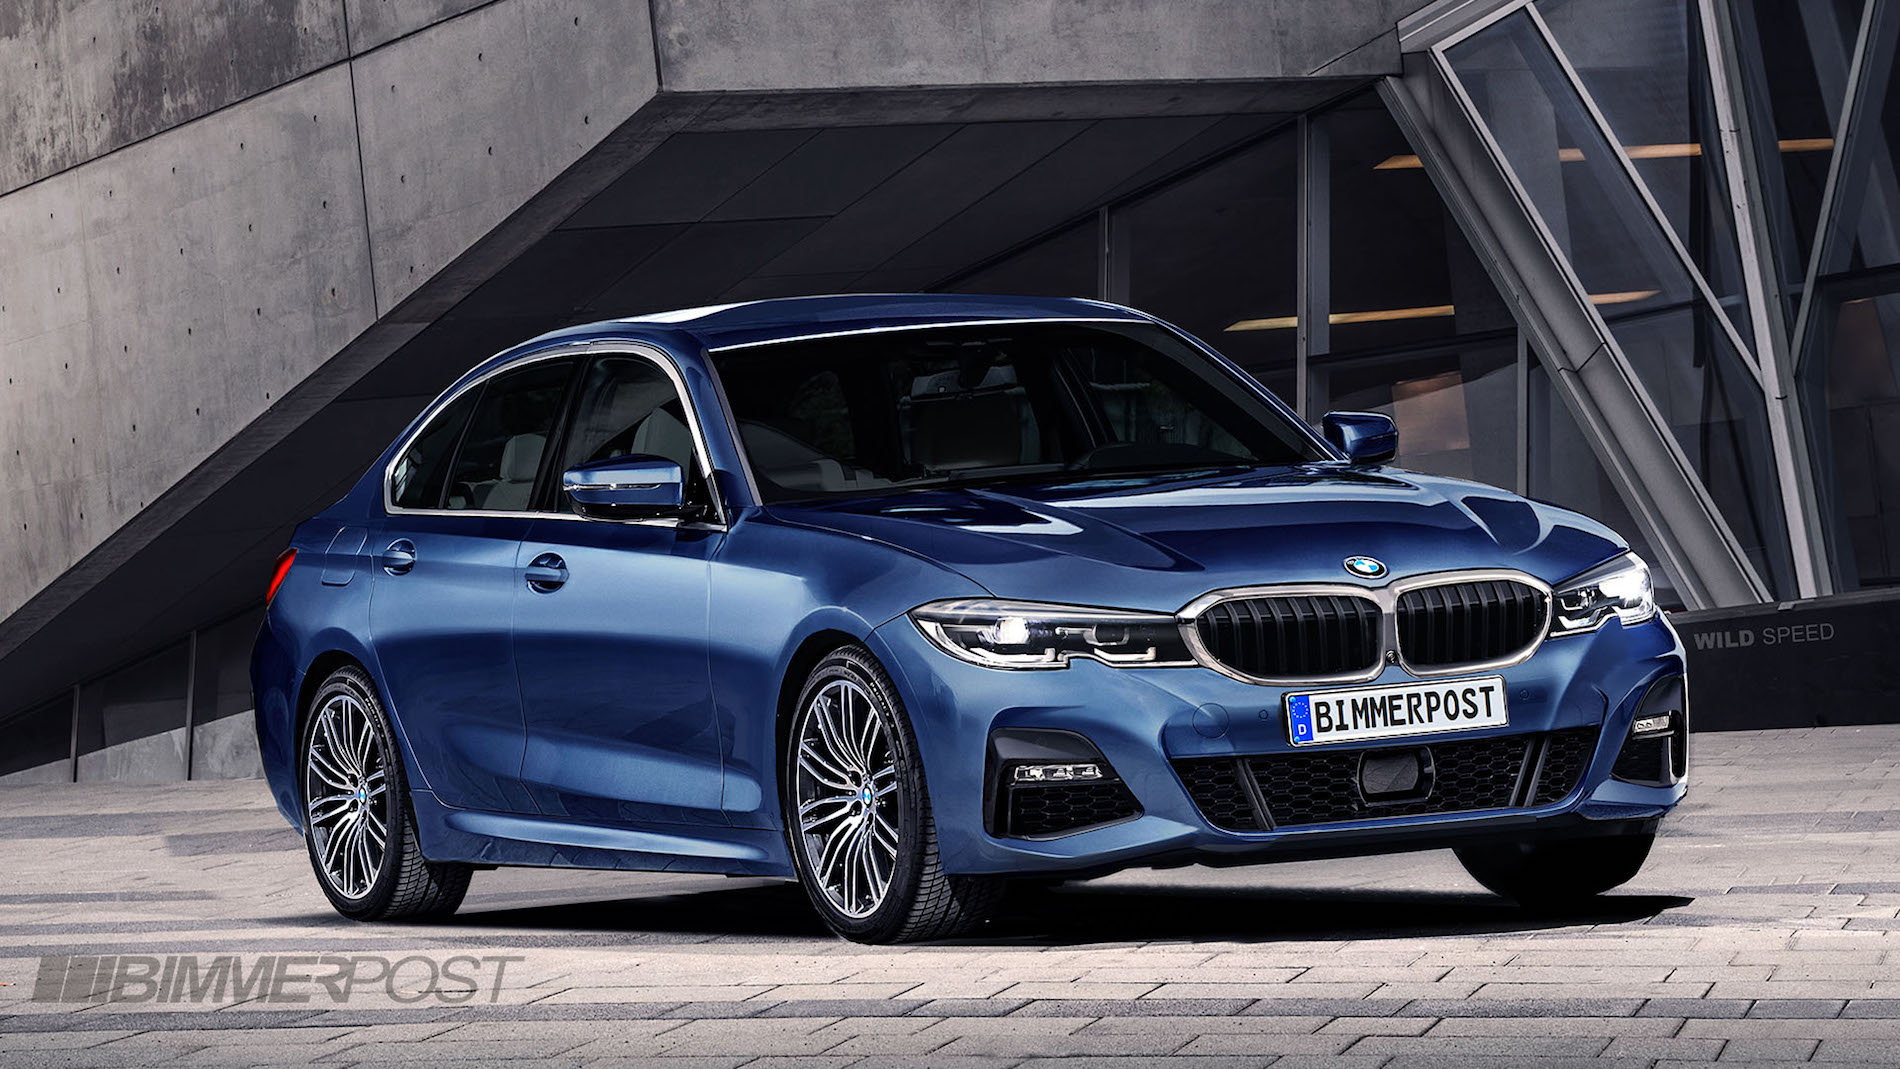 G20 Bmw 3 Series Rendered After Latest Spy Shots